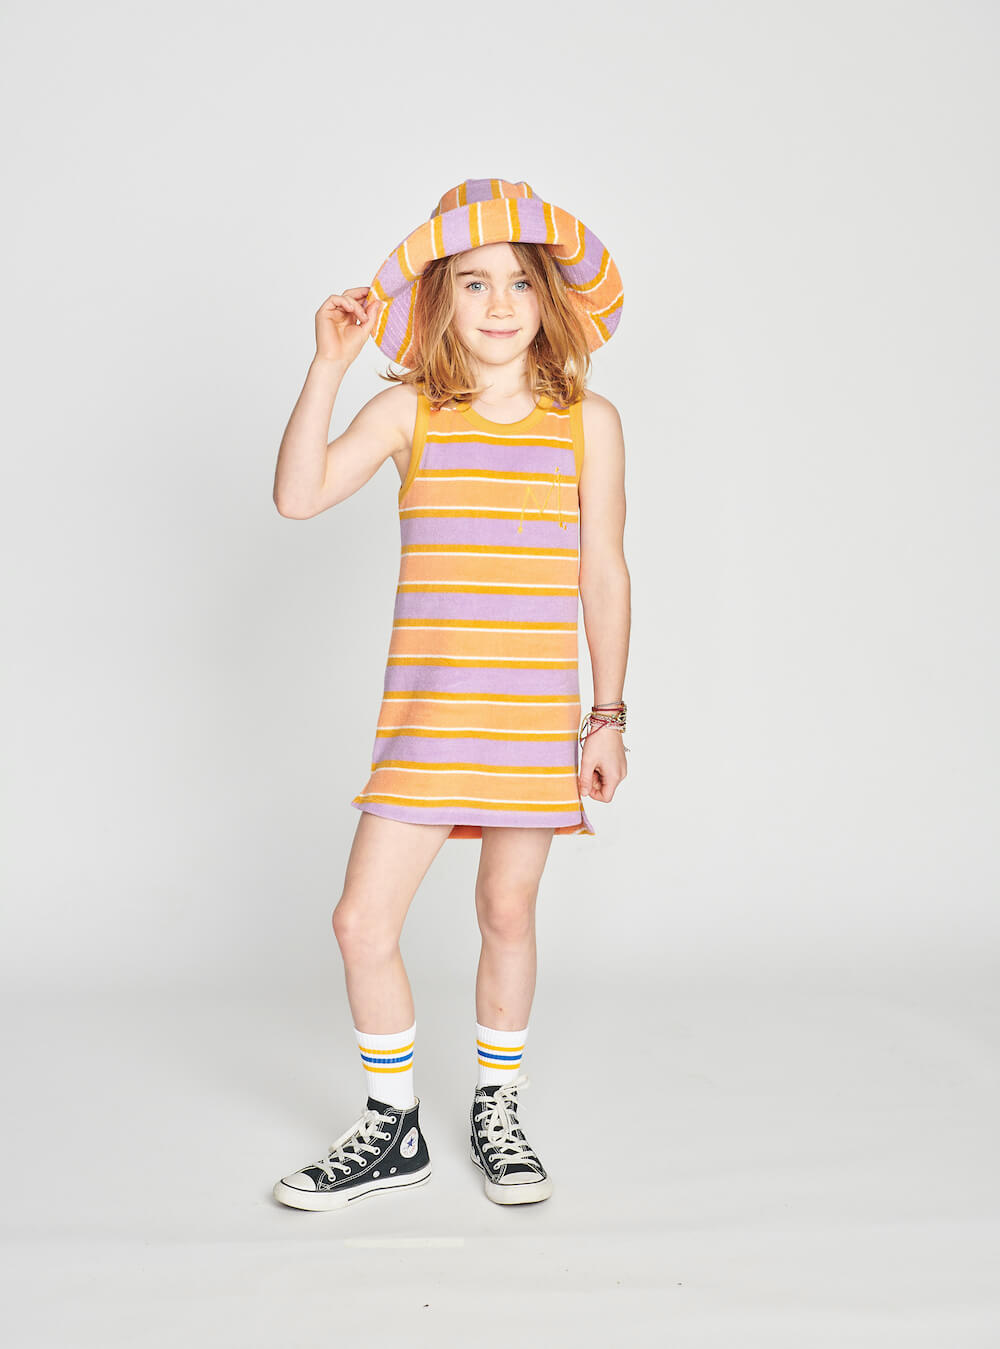 Missis Muster Saylor Bucket Hat | Tiny People